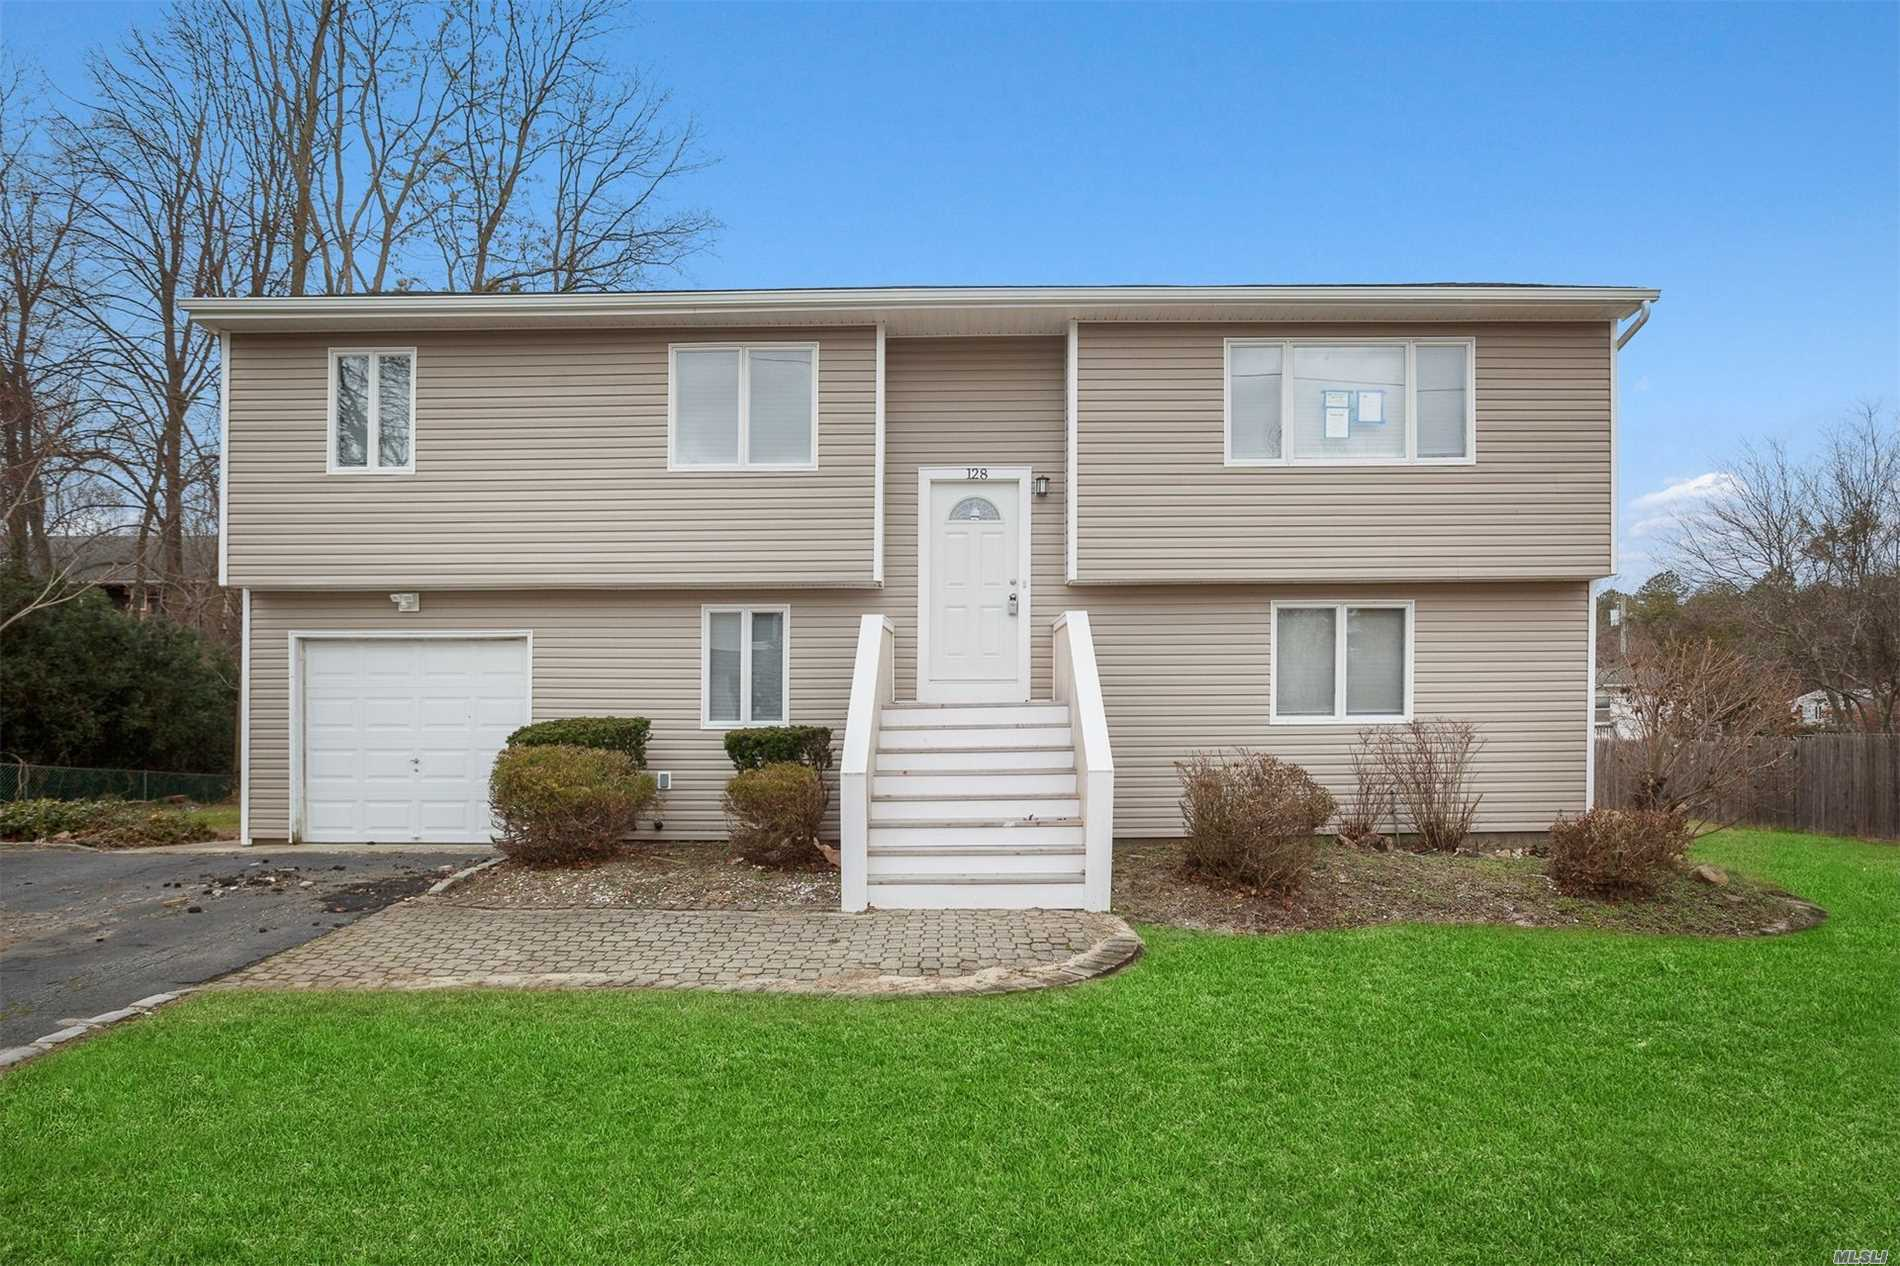 Large & Lovely High-Ranch Ready To Move Right In! Nicely Updated W/ Ss Appliances, New Carpets & More! Clean As A Whistle Garage & Large Property W/ Room For Growth! Unique Bi-Level Rear Deck To Enjoy The Great Outdoors! Don't Let This Deal Pass You By!